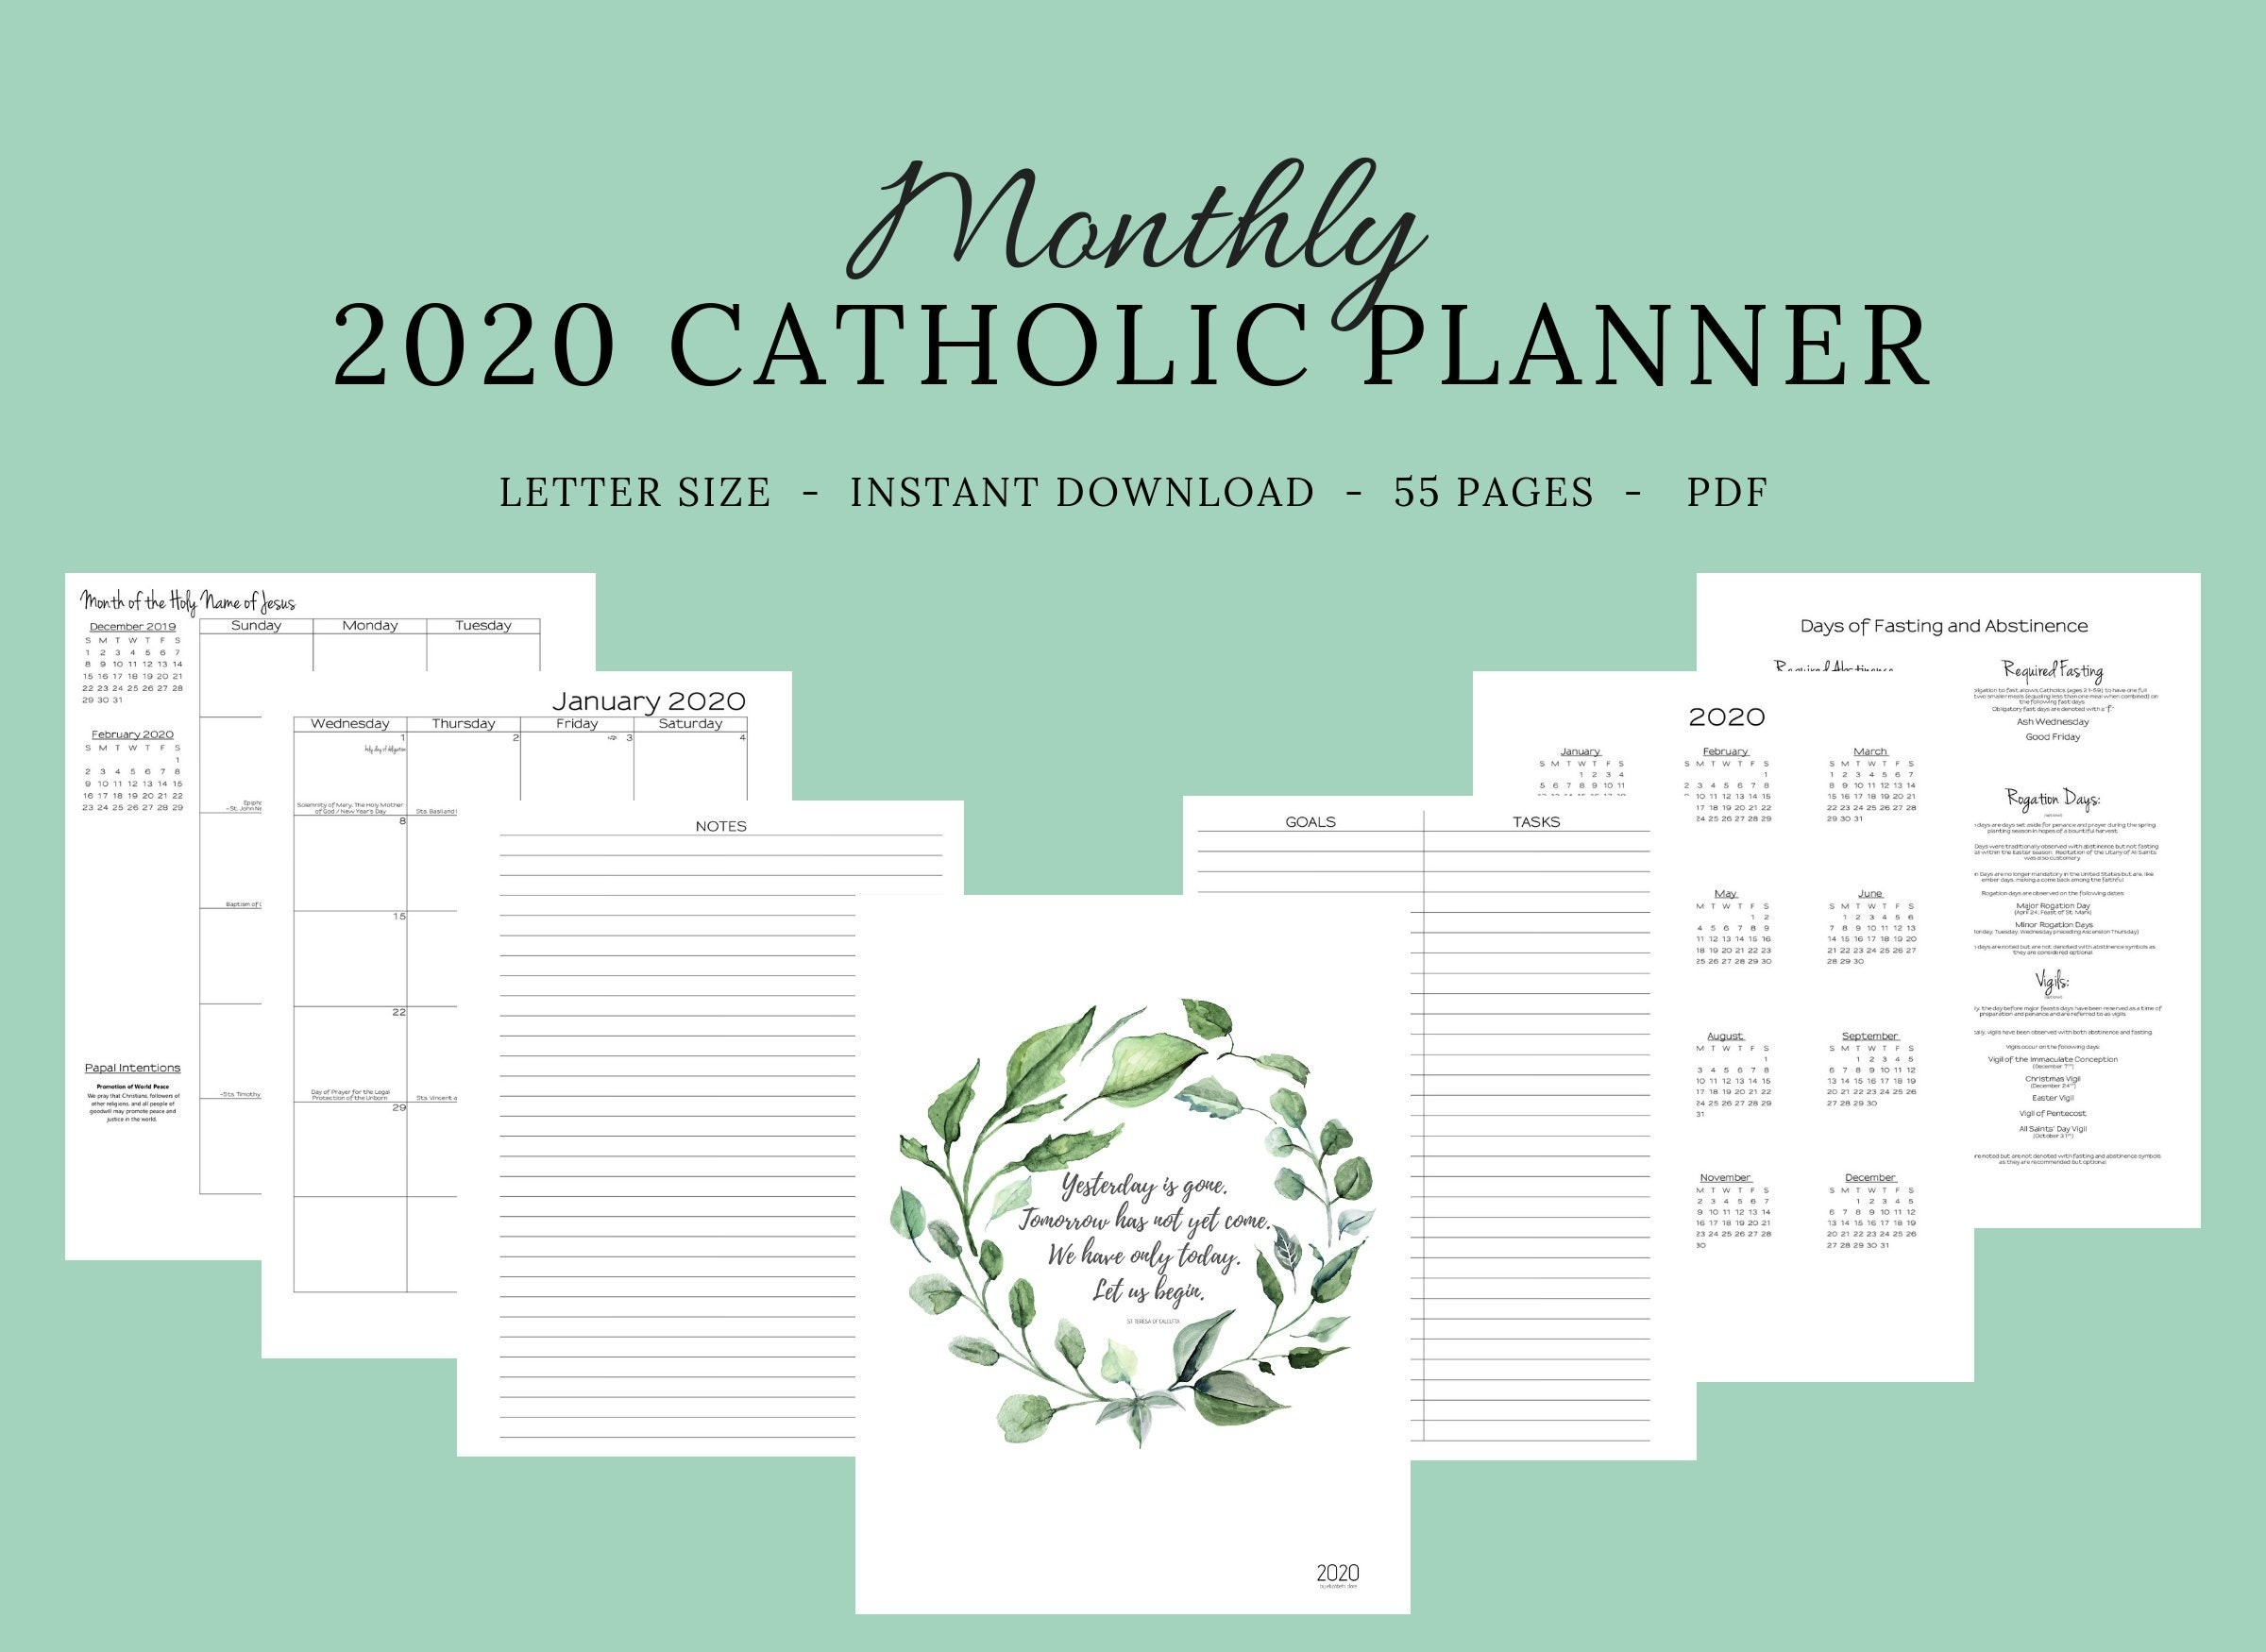 2020 Catholic Planner Monthly Printable: Monthly Planner / Catholic  Liturgical Year Calendar / Printable Catholic Planner / Catholic Woman-2020 Catholic Monthly Calendar Printable